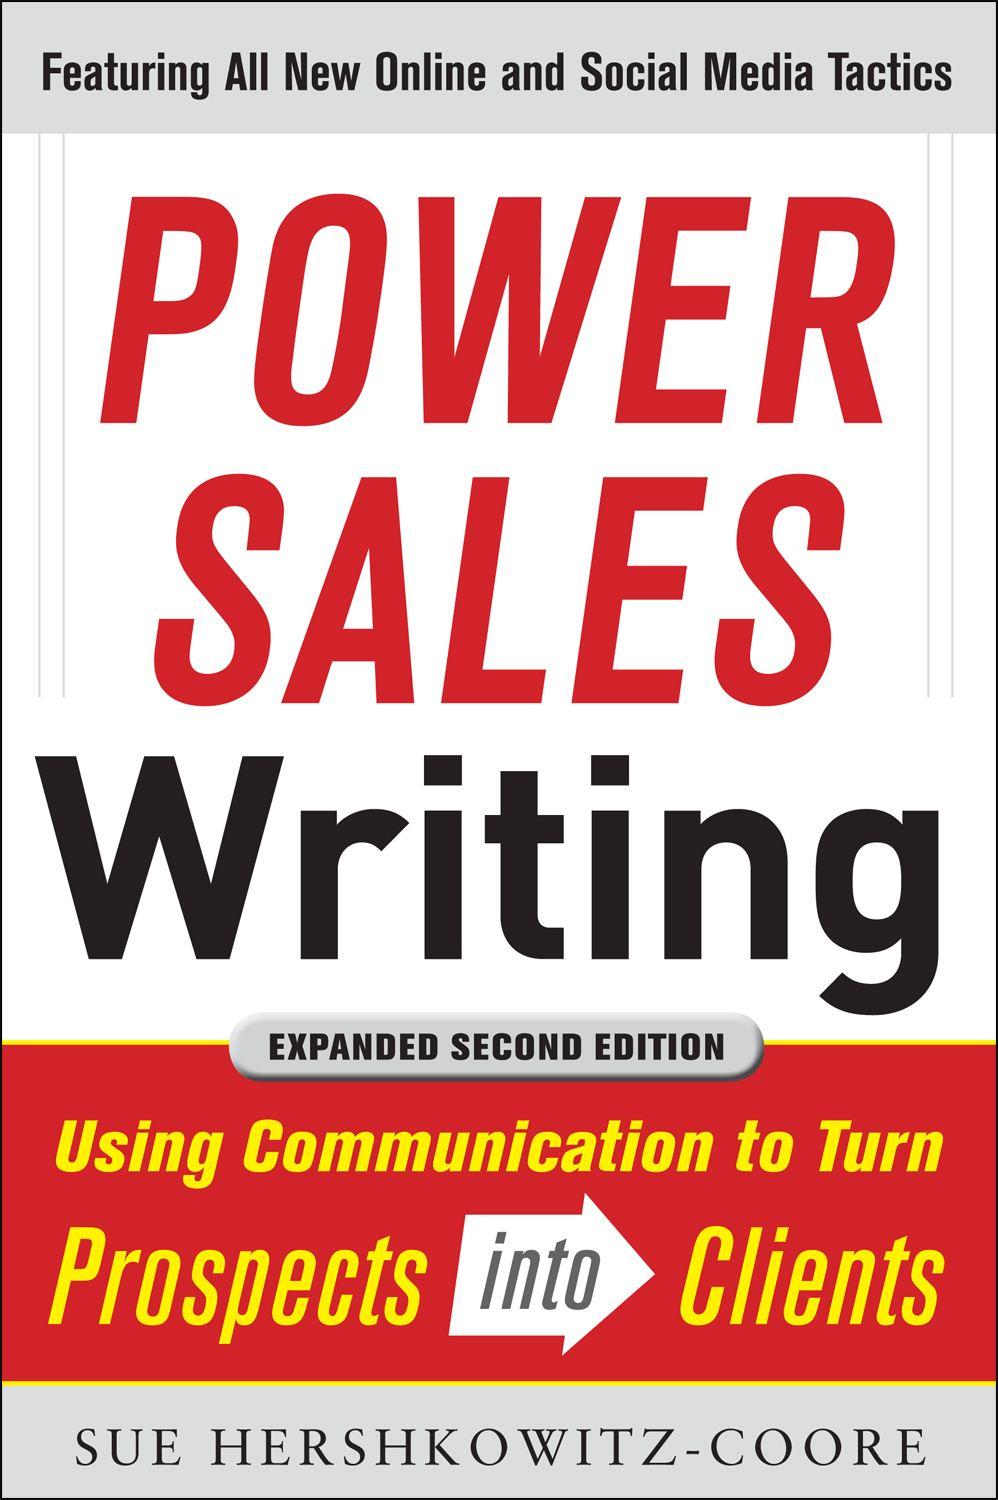 Power Sales Writing, Revised and Expanded Edition: Using Communication to Turn Prospects into Clients By: HERSHKOWITZ-COORE